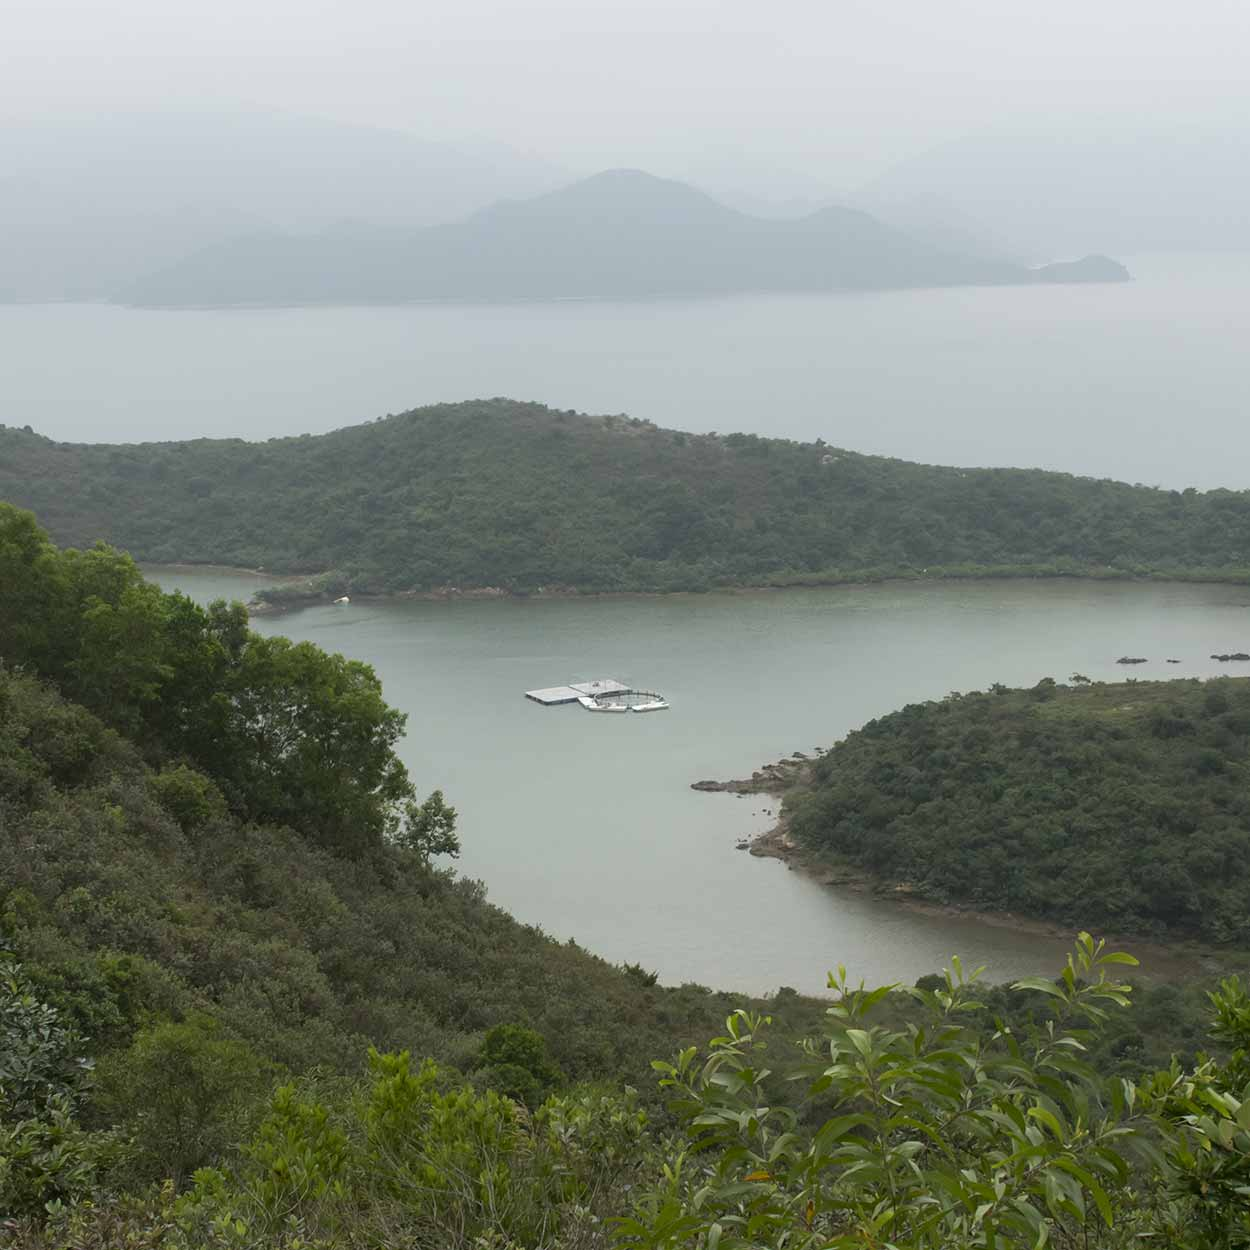 Views to the Tolo Channel, Plover Cove Reservoir Country Trail, Hong Kong, China